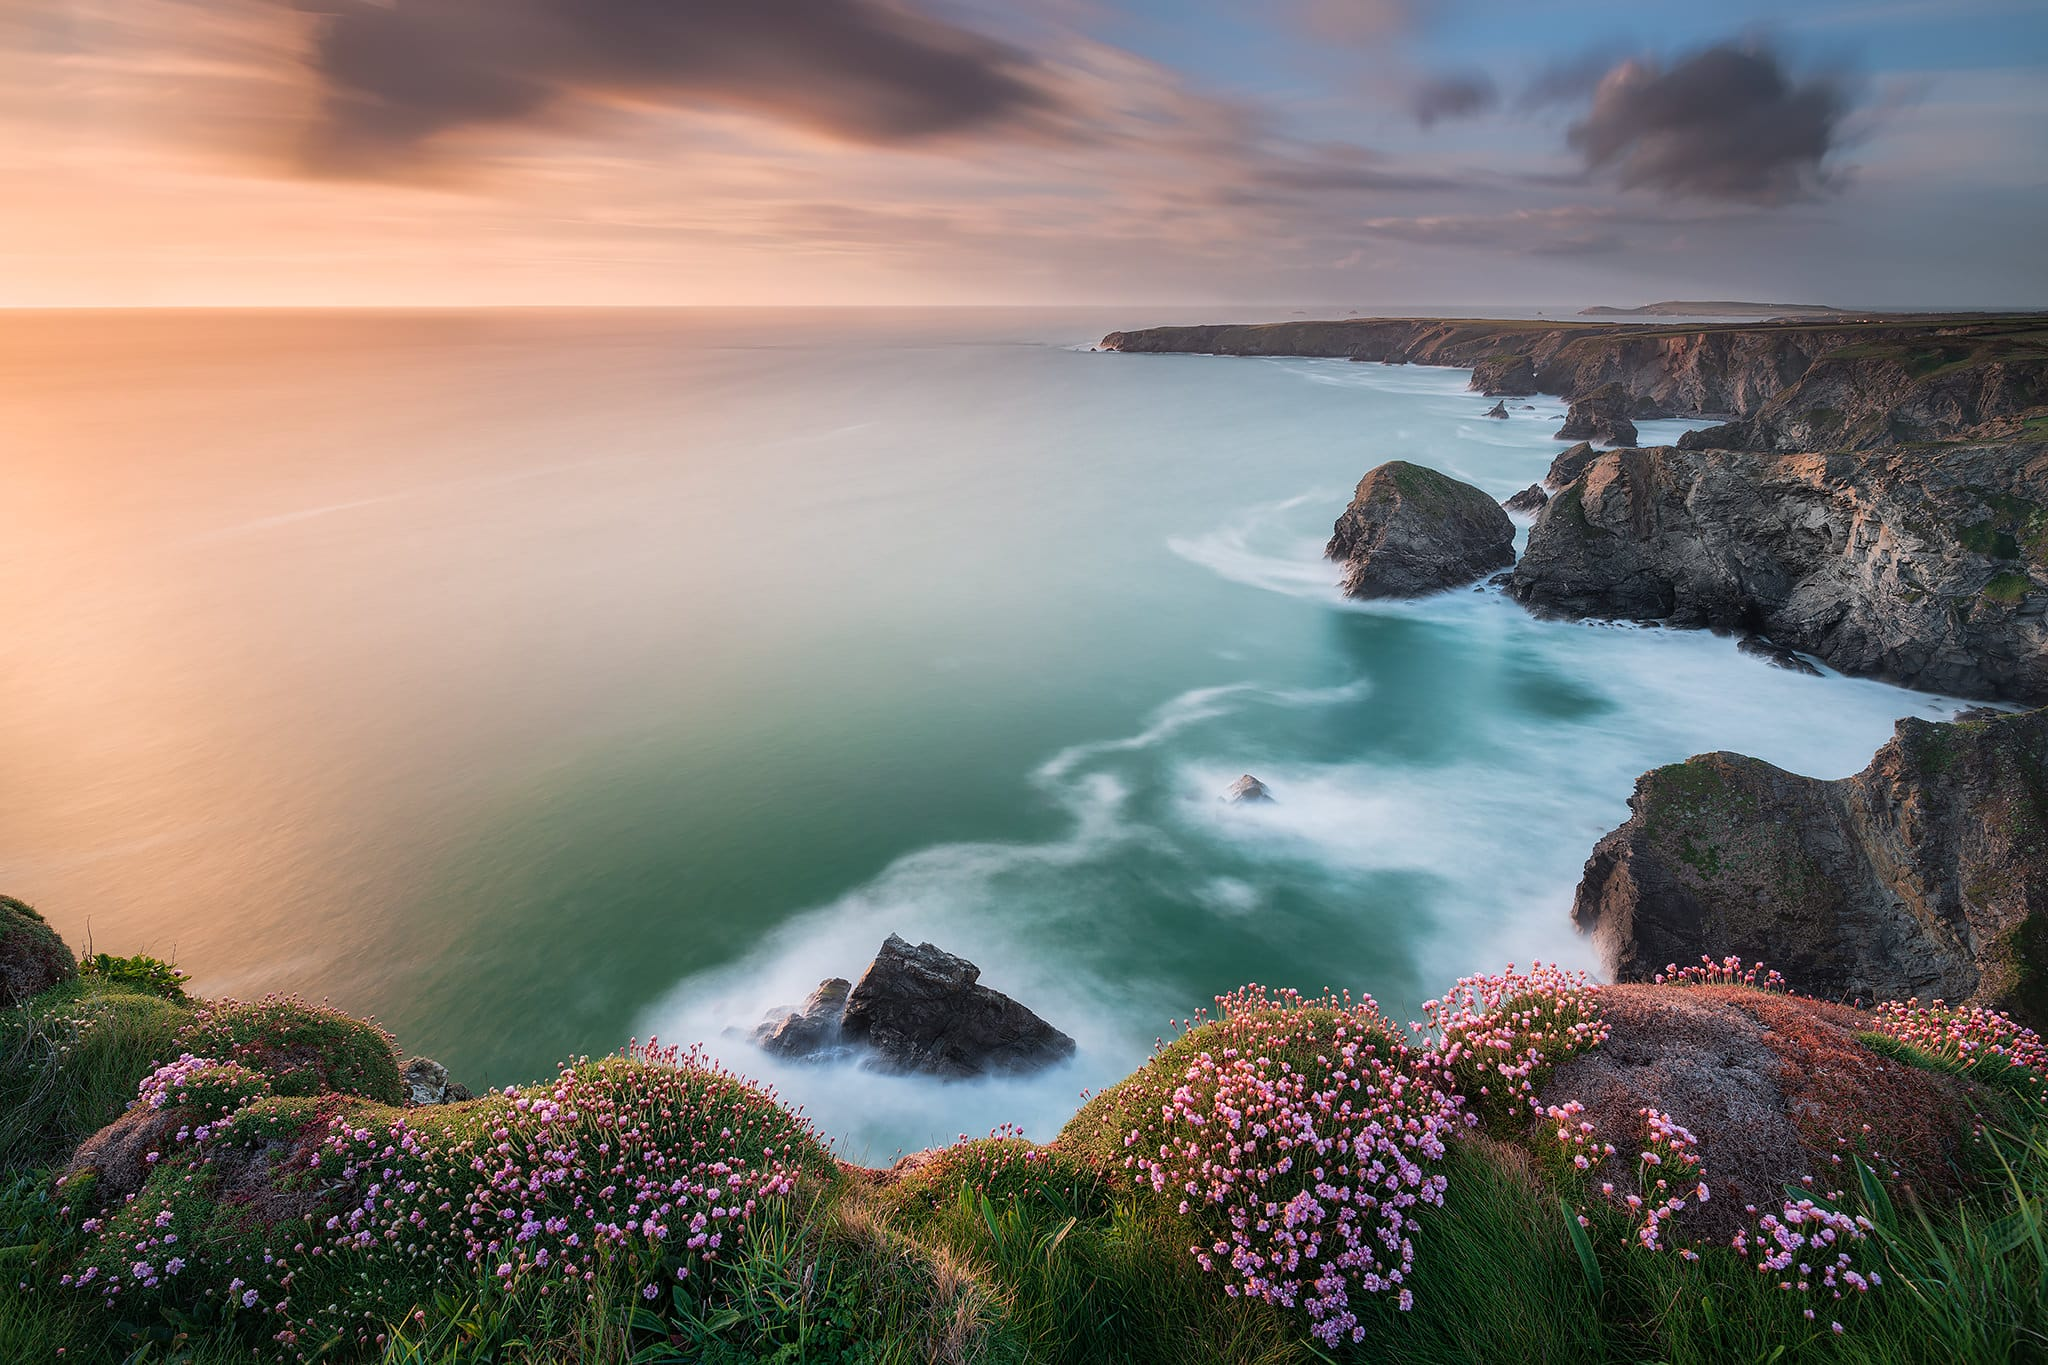 Francesco Gola Long Exposure Photography Seascape UK Cornwall Bedruthan Steps